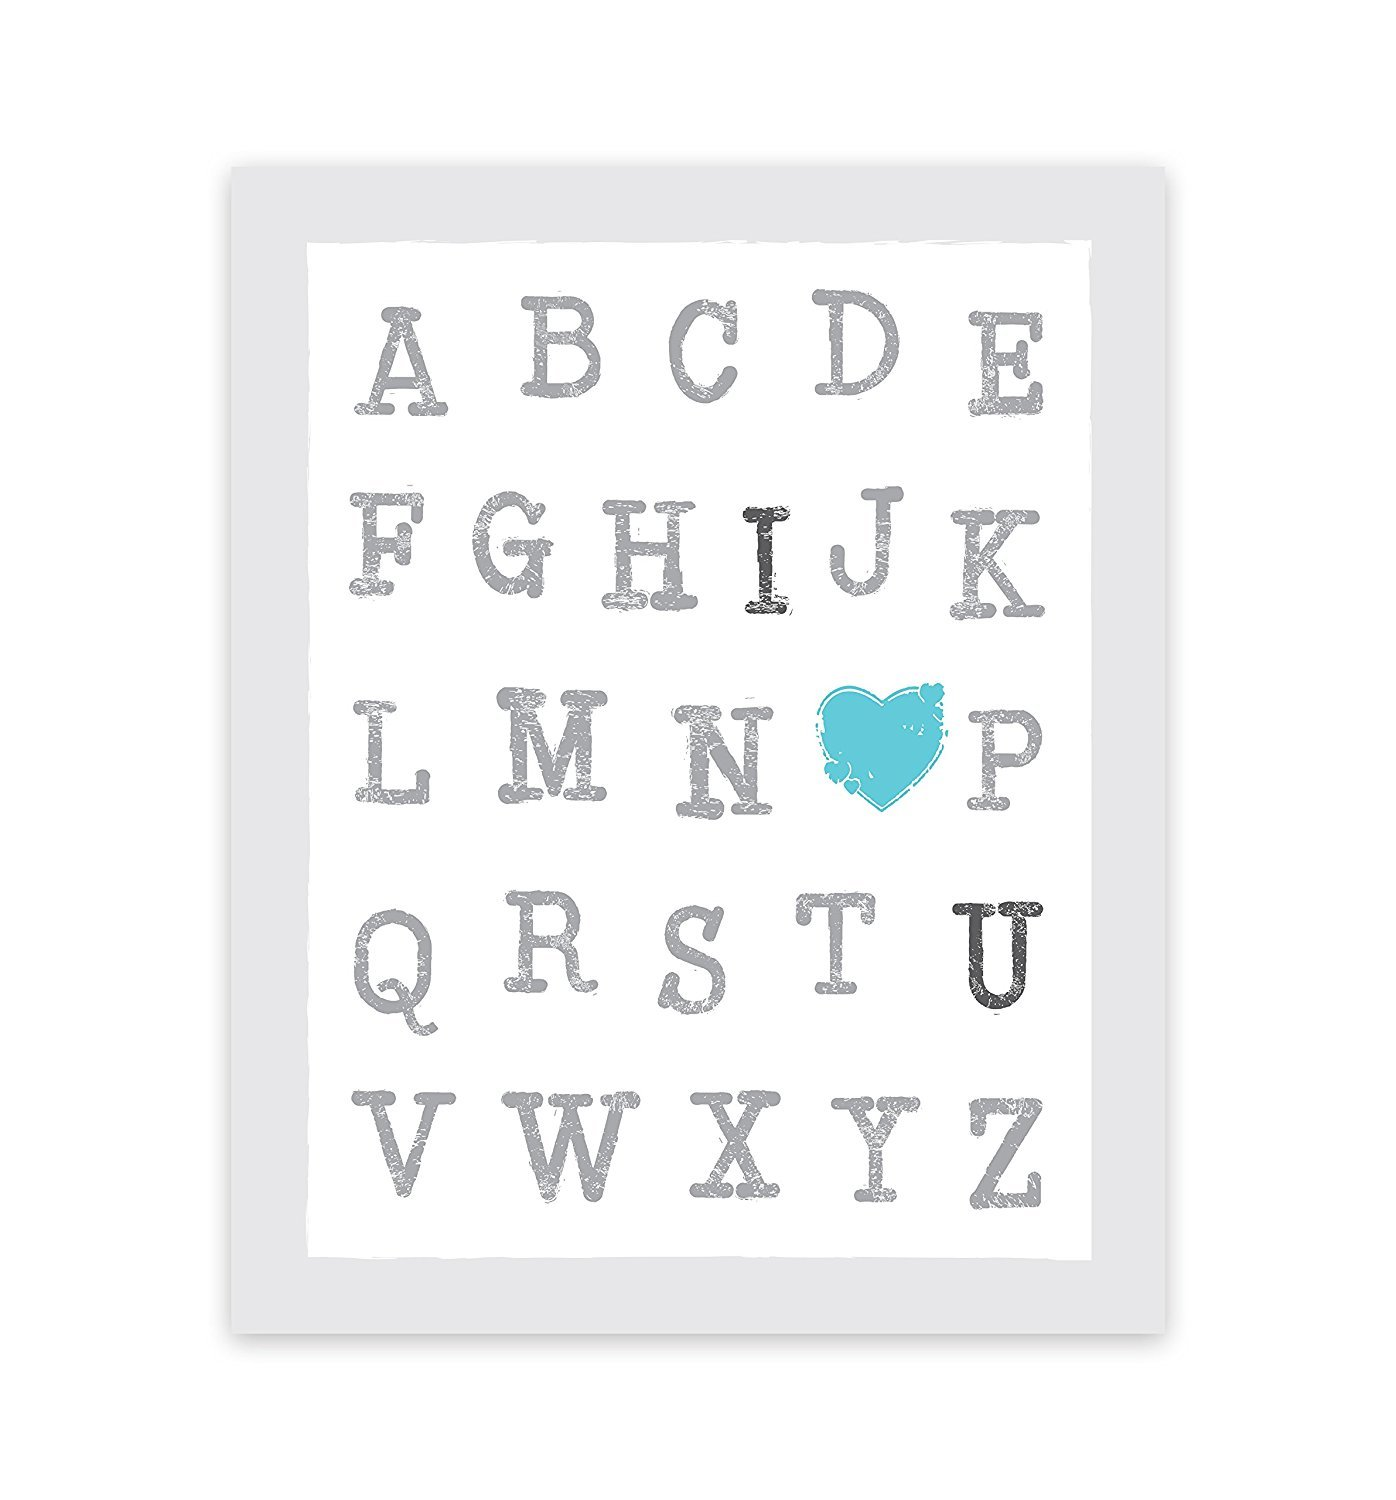 I Love You Wall Quotes Nursery Quotes Alphabet Letters Words Art Alphabet Wall Art Decor Baby Boy Nursery Decor Wall Art ABC I Heart You Designs ABCs of Love Blue 05x07 Inch Print